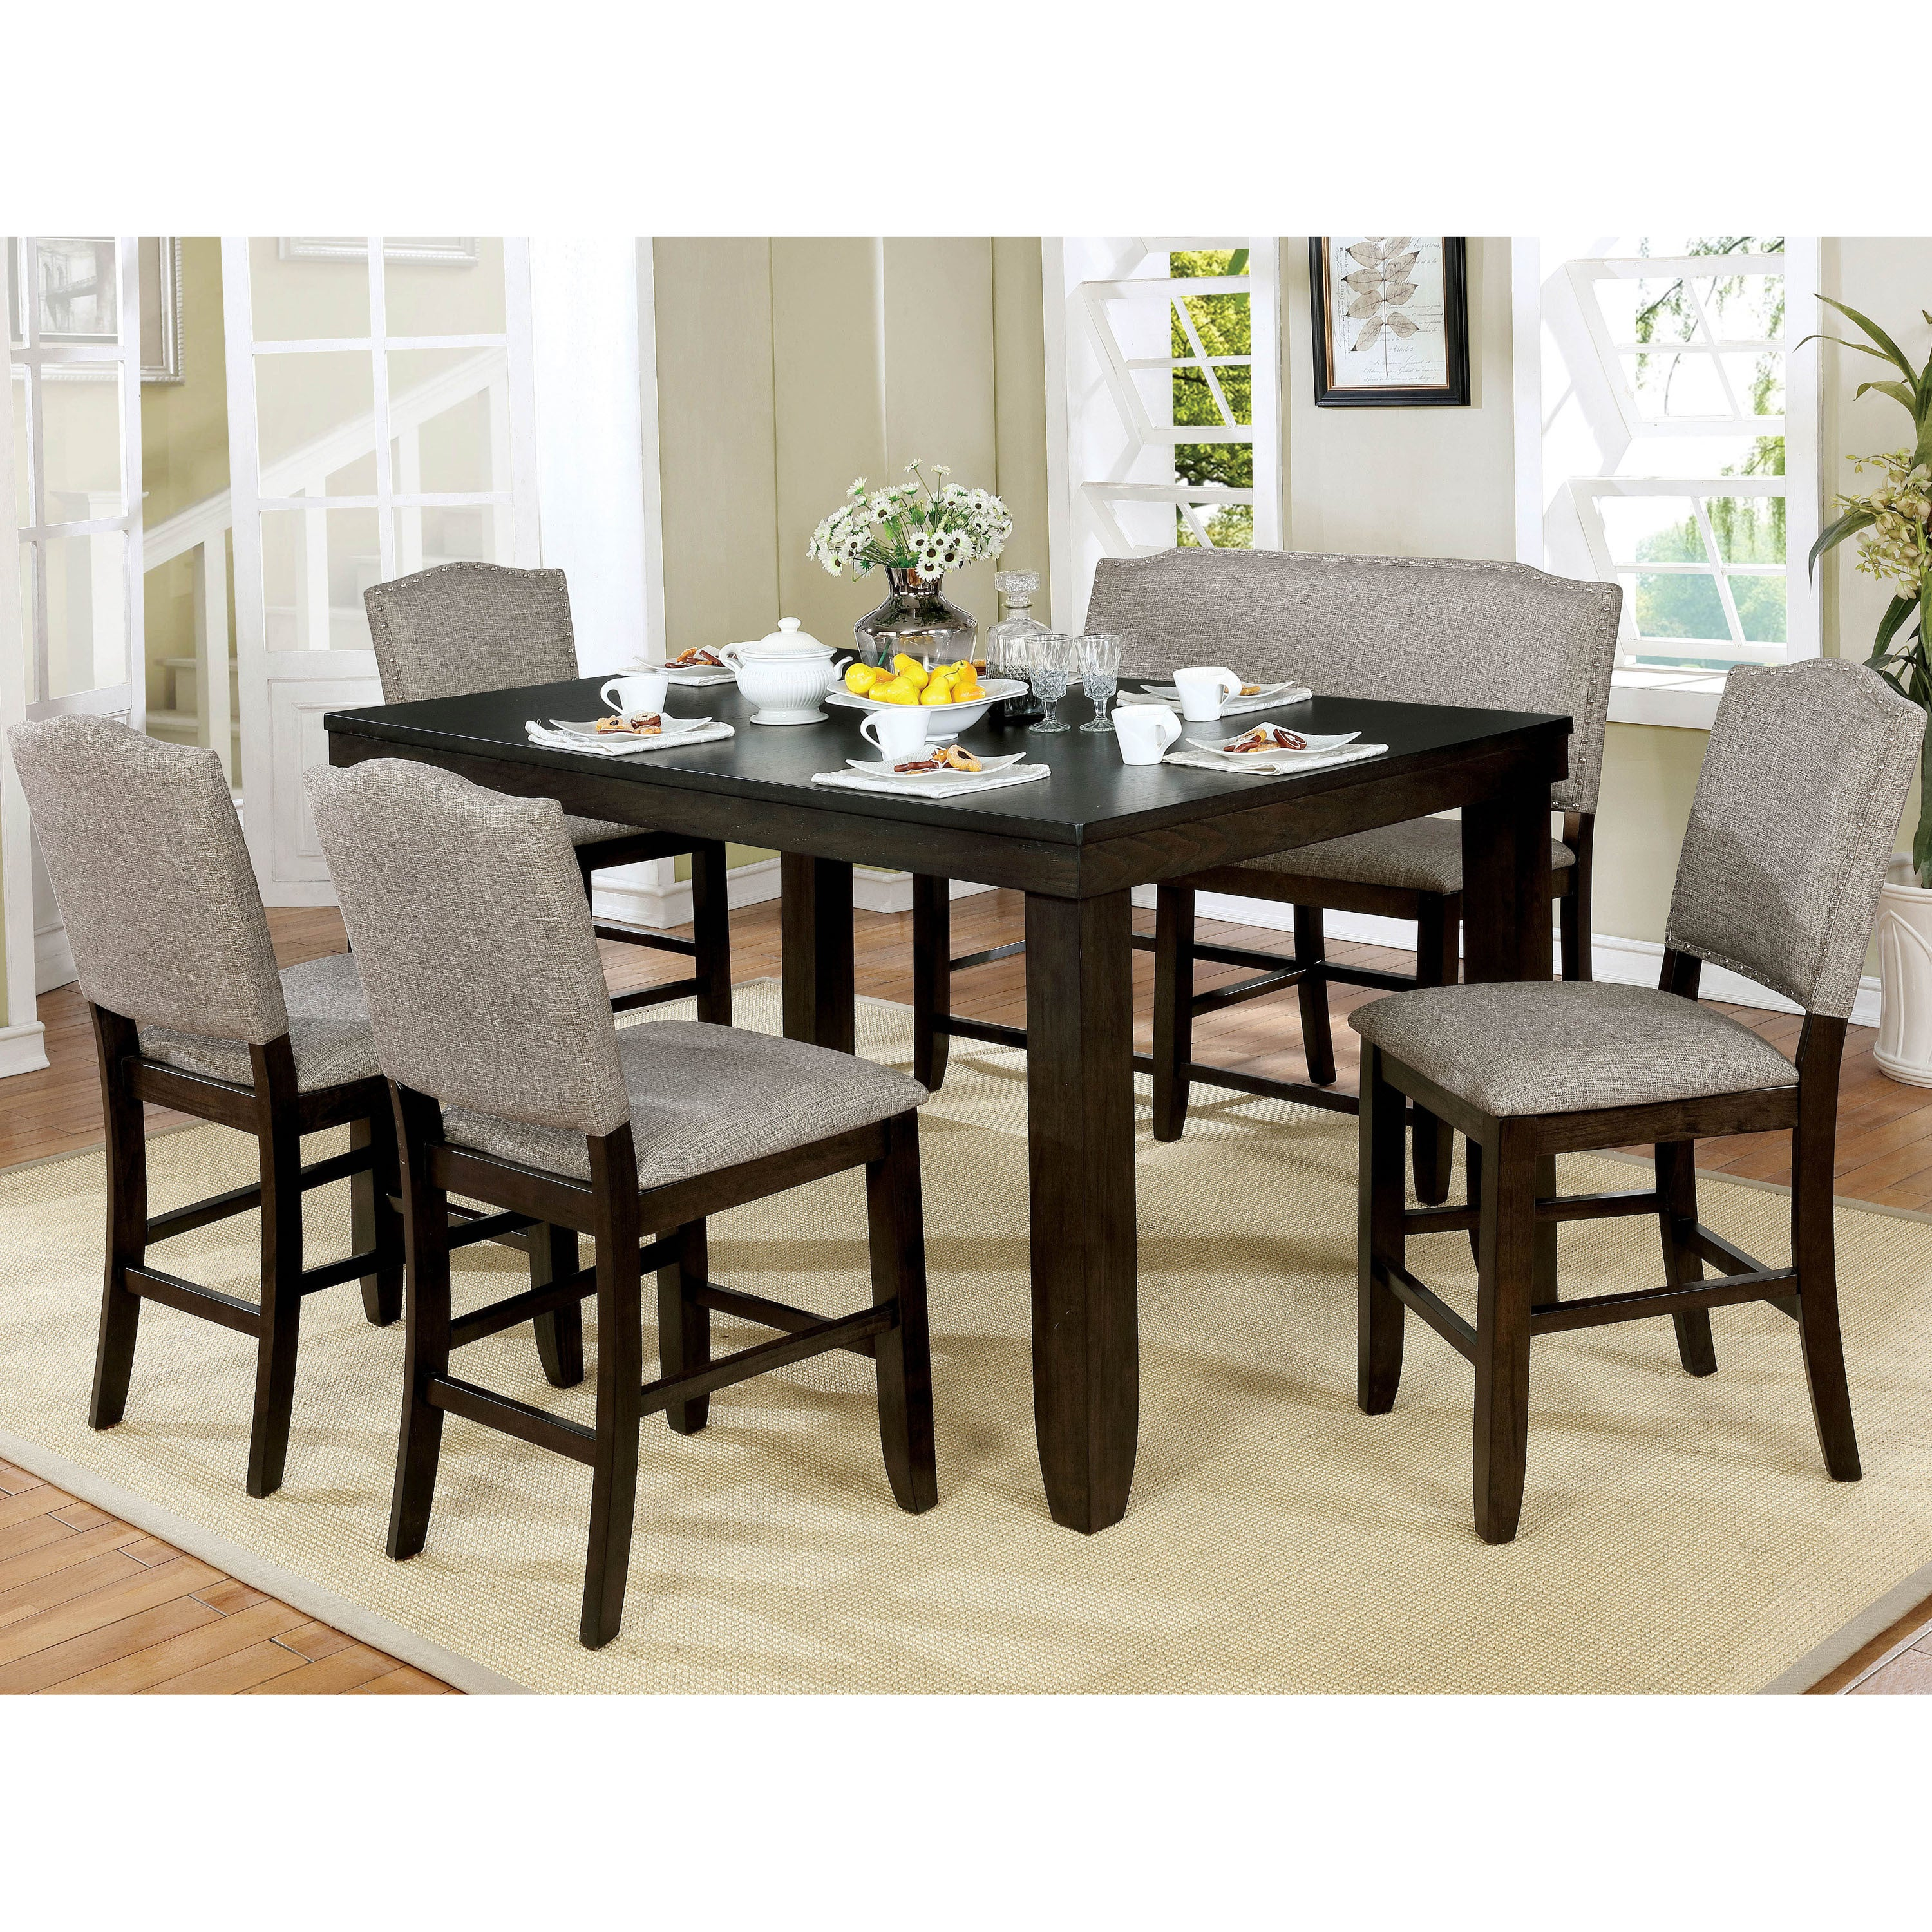 Davenport Transitional 6 Piece Dark Walnut Dining Table Set By Foa